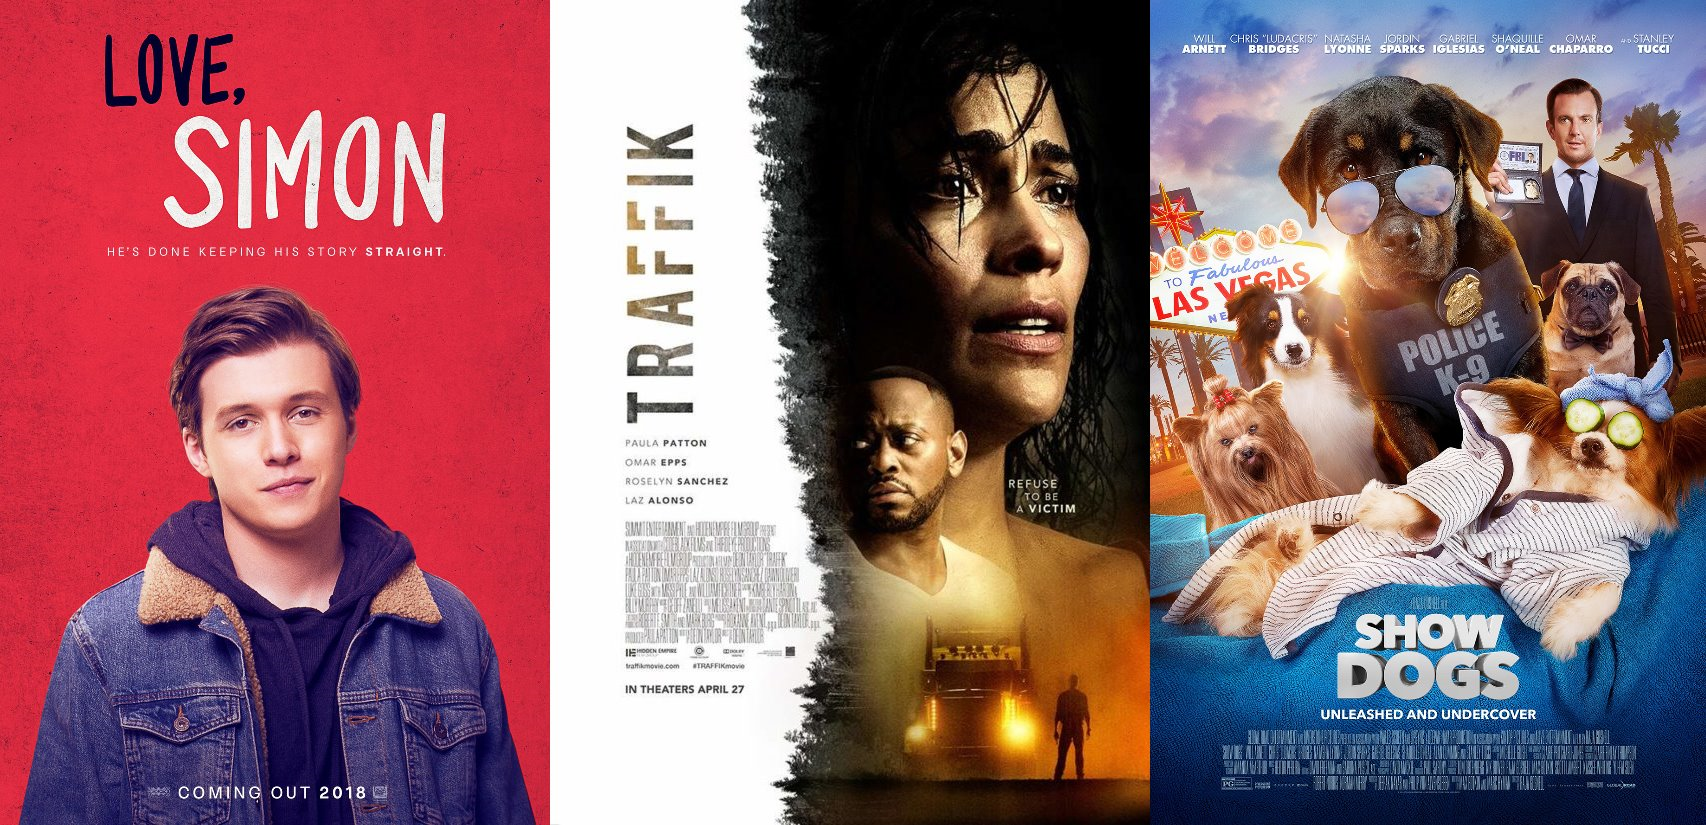 2018 Movie Posters: Trailer-Watchin' Wednesday: Show Dogs, Traffik, Love Simon